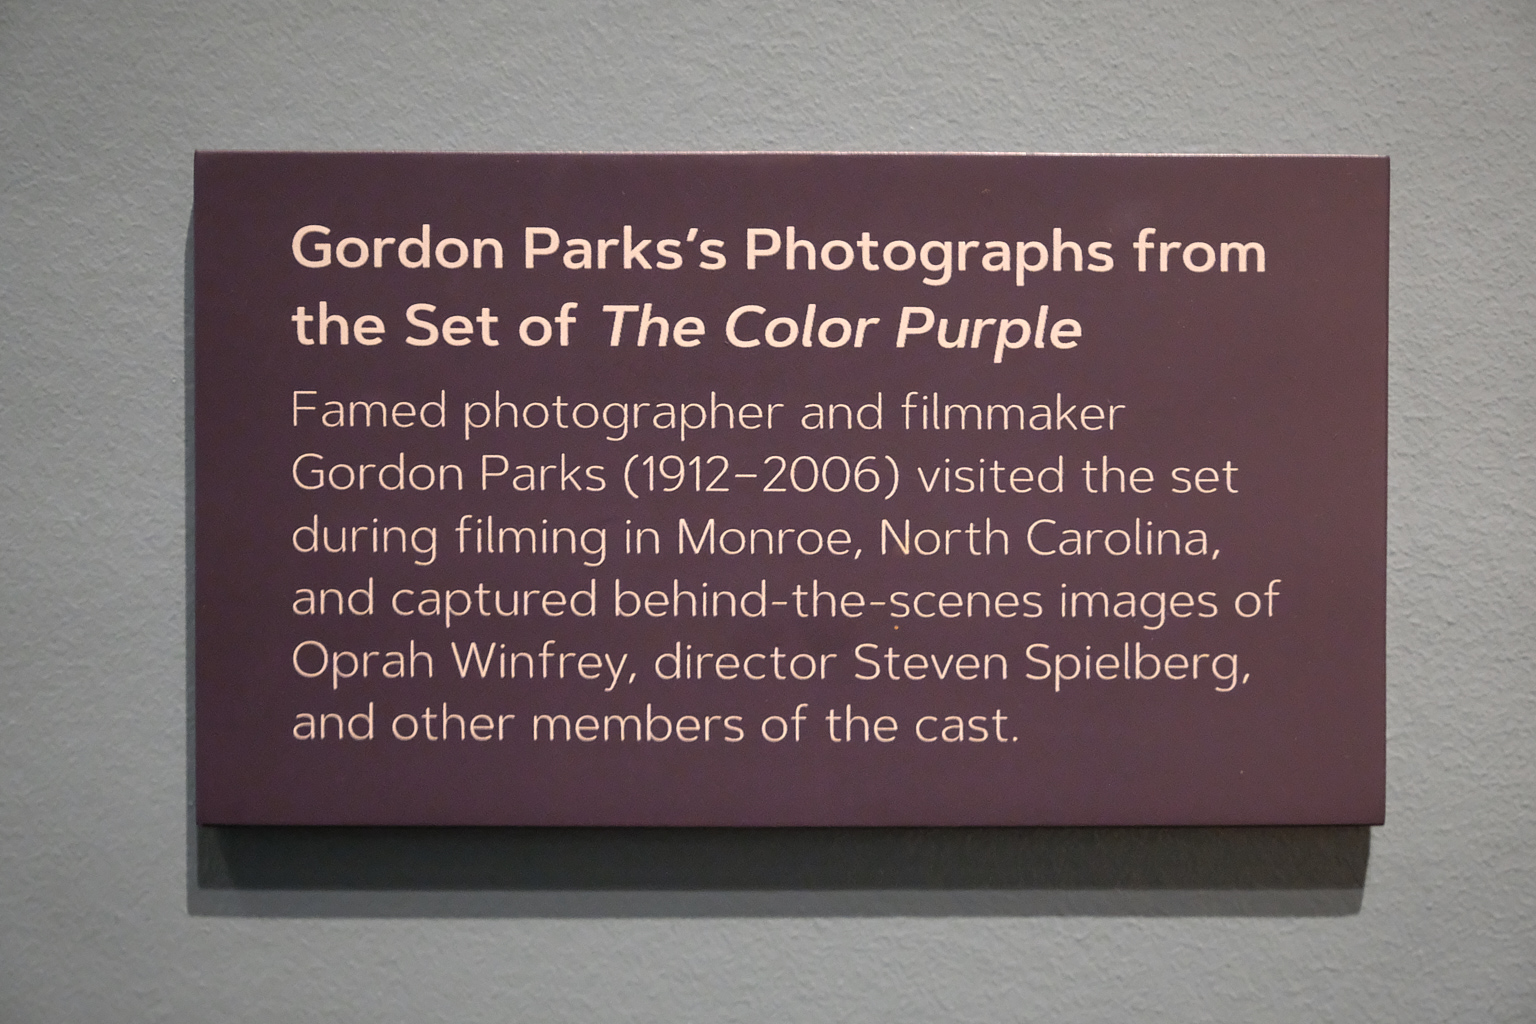 Gordon Parks! Gordon freaking Parks!!!…just hanging around shooting behind-the-scenes images! Incredible. You know you have something special going on when there's something like that happening and it's just a footnote.